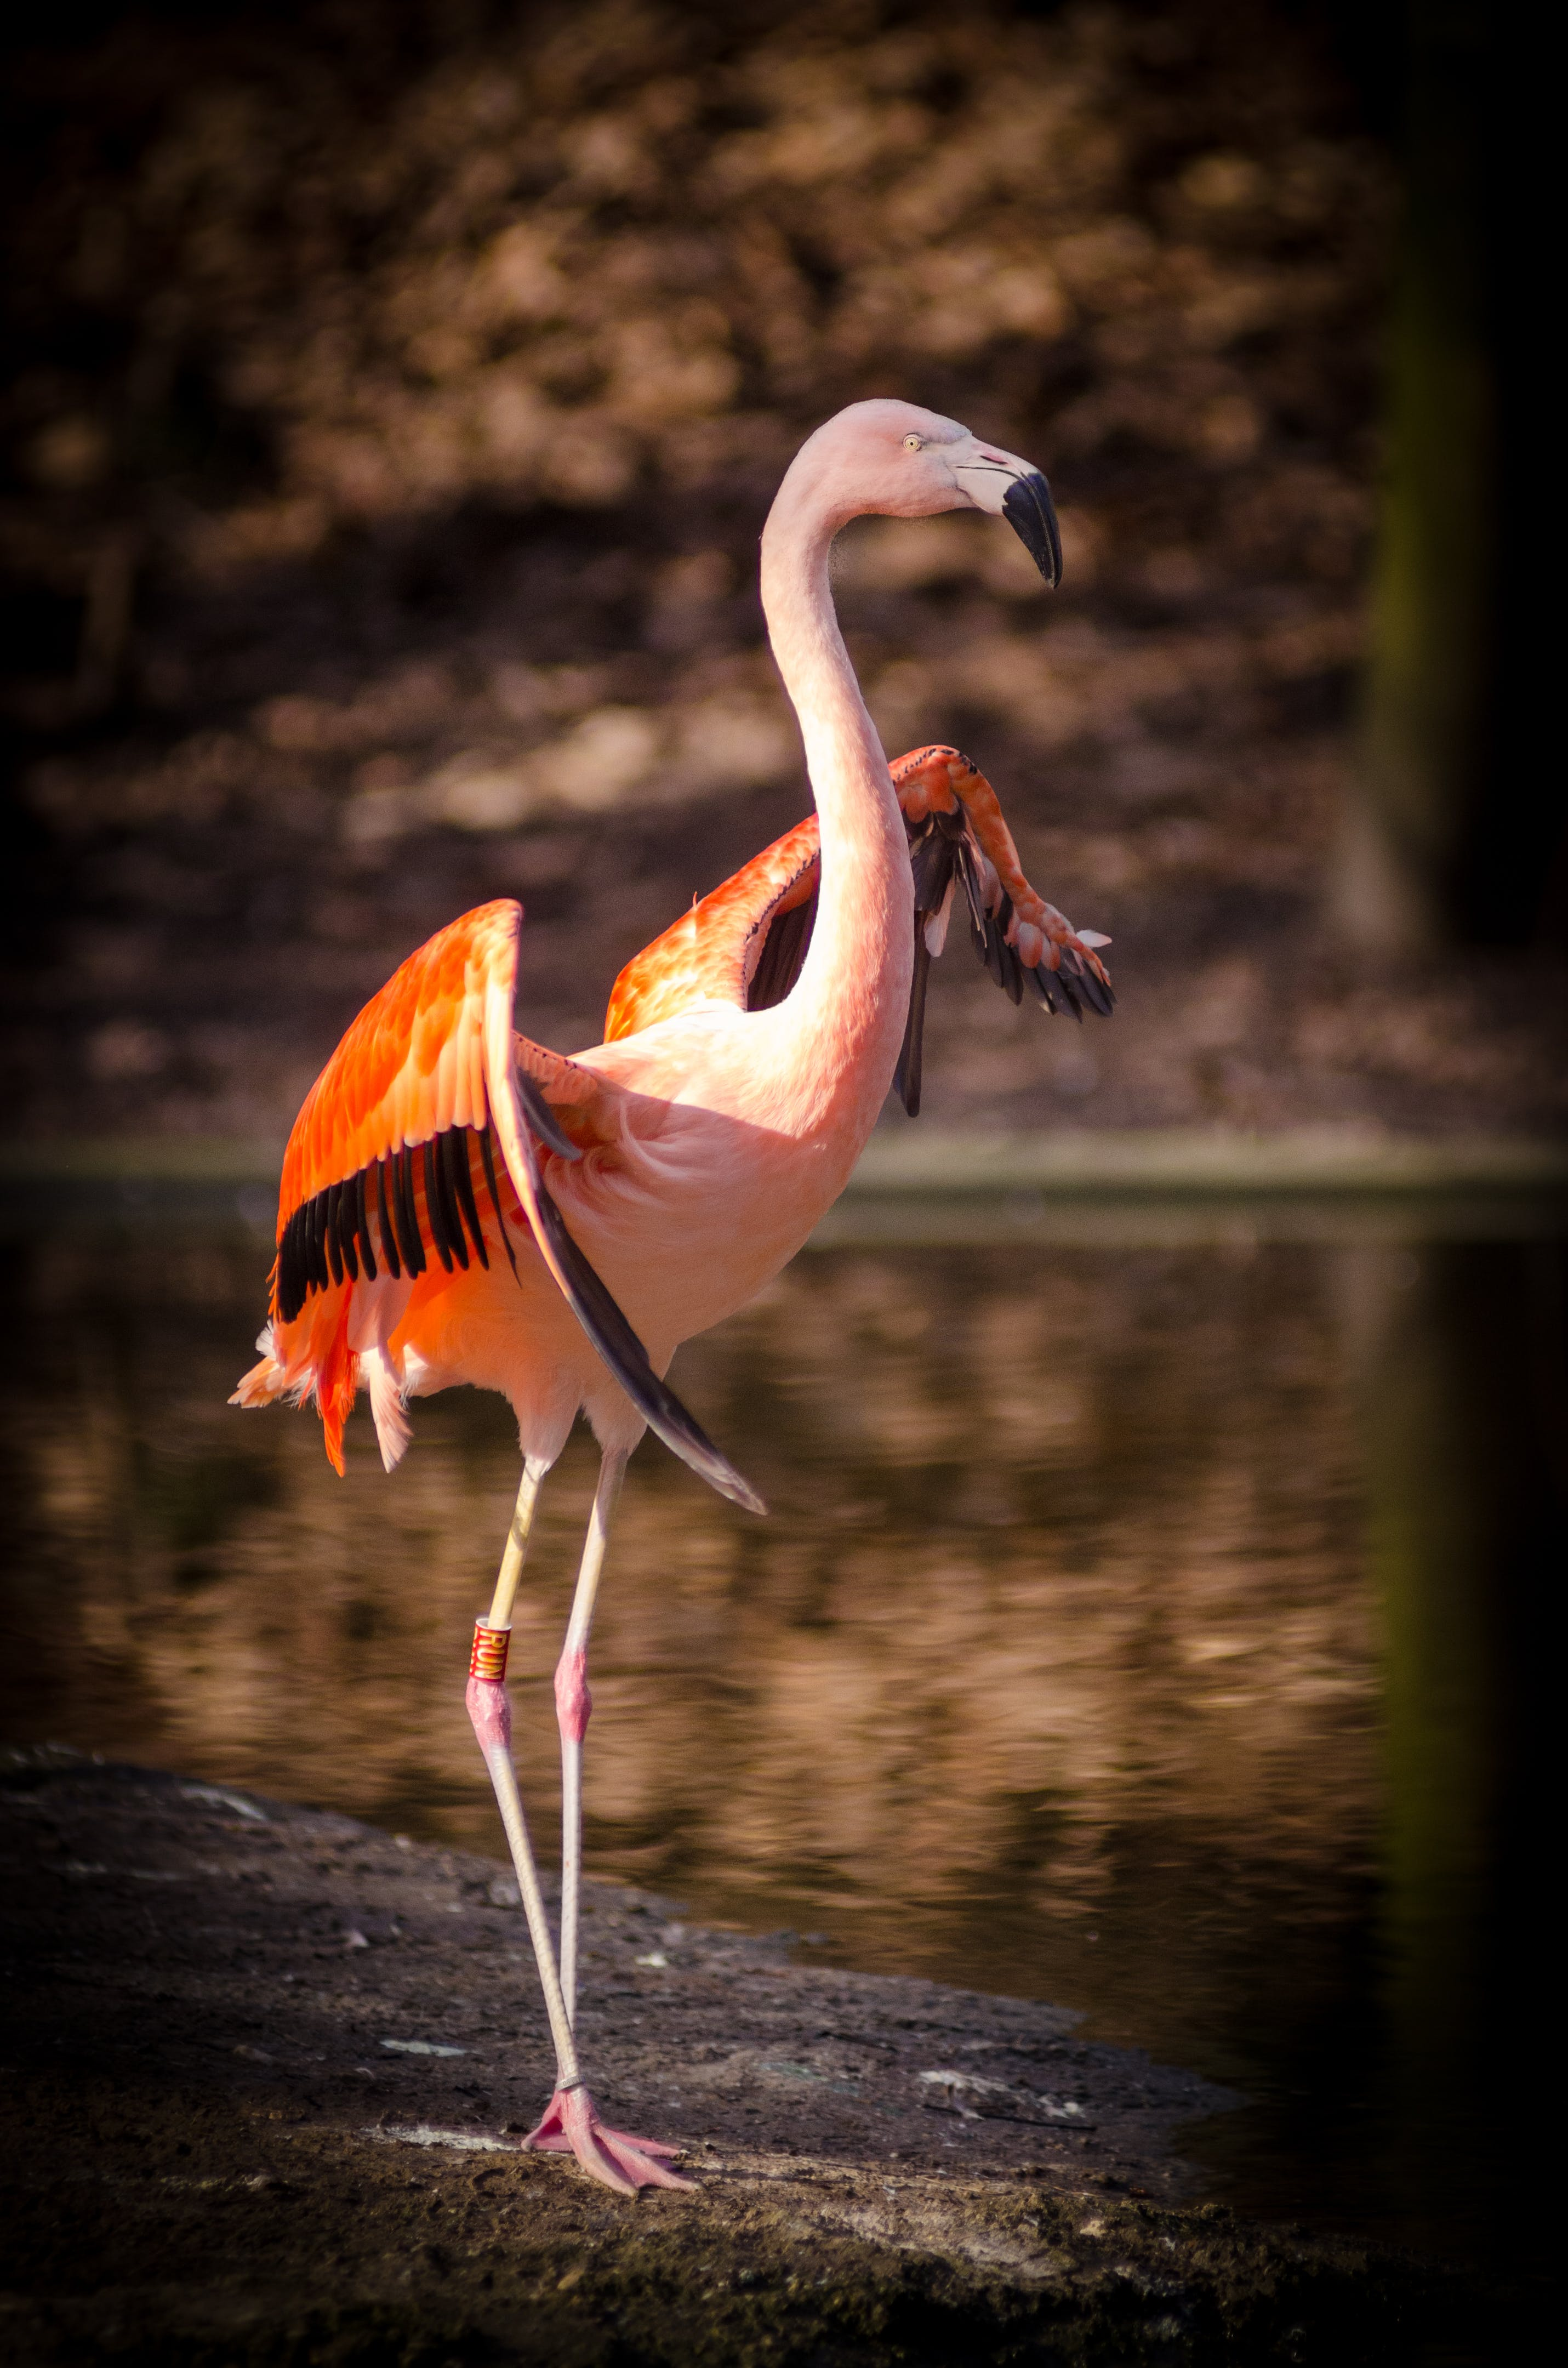 Pink and Red Flamingo Standing Near Body of